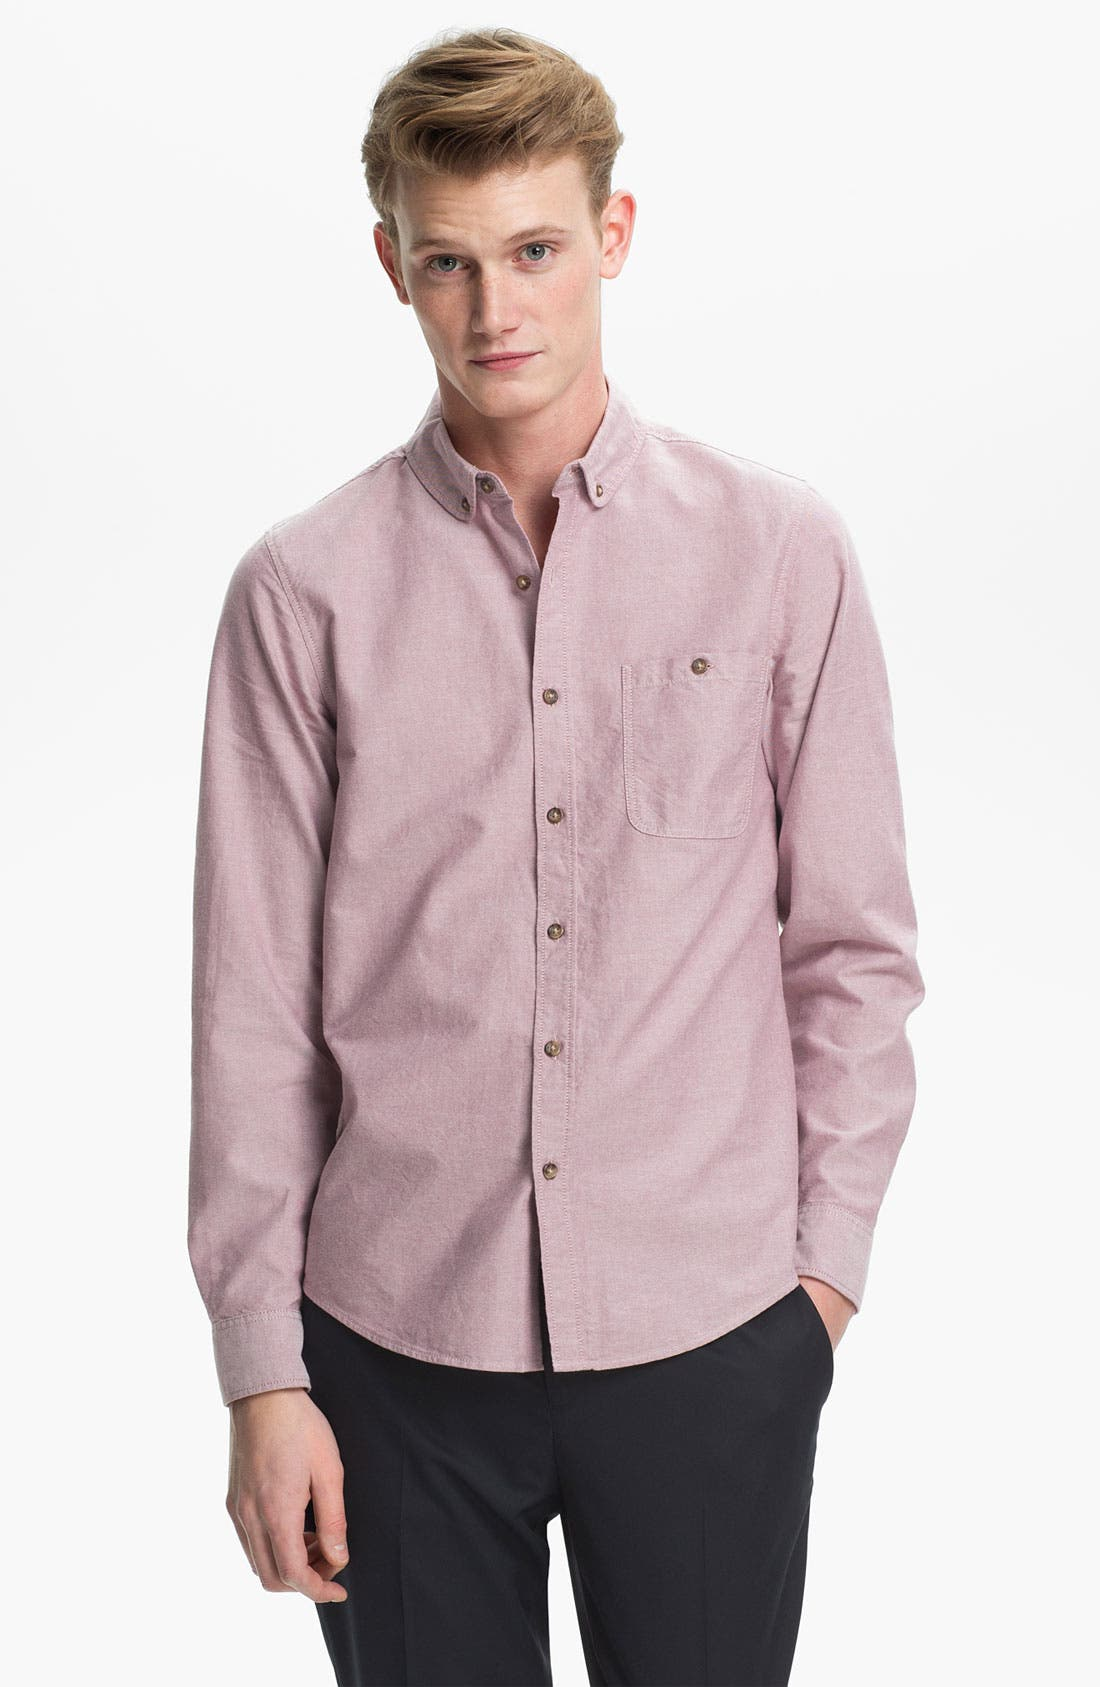 Alternate Image 1 Selected - Topman Curved Collar Oxford Shirt